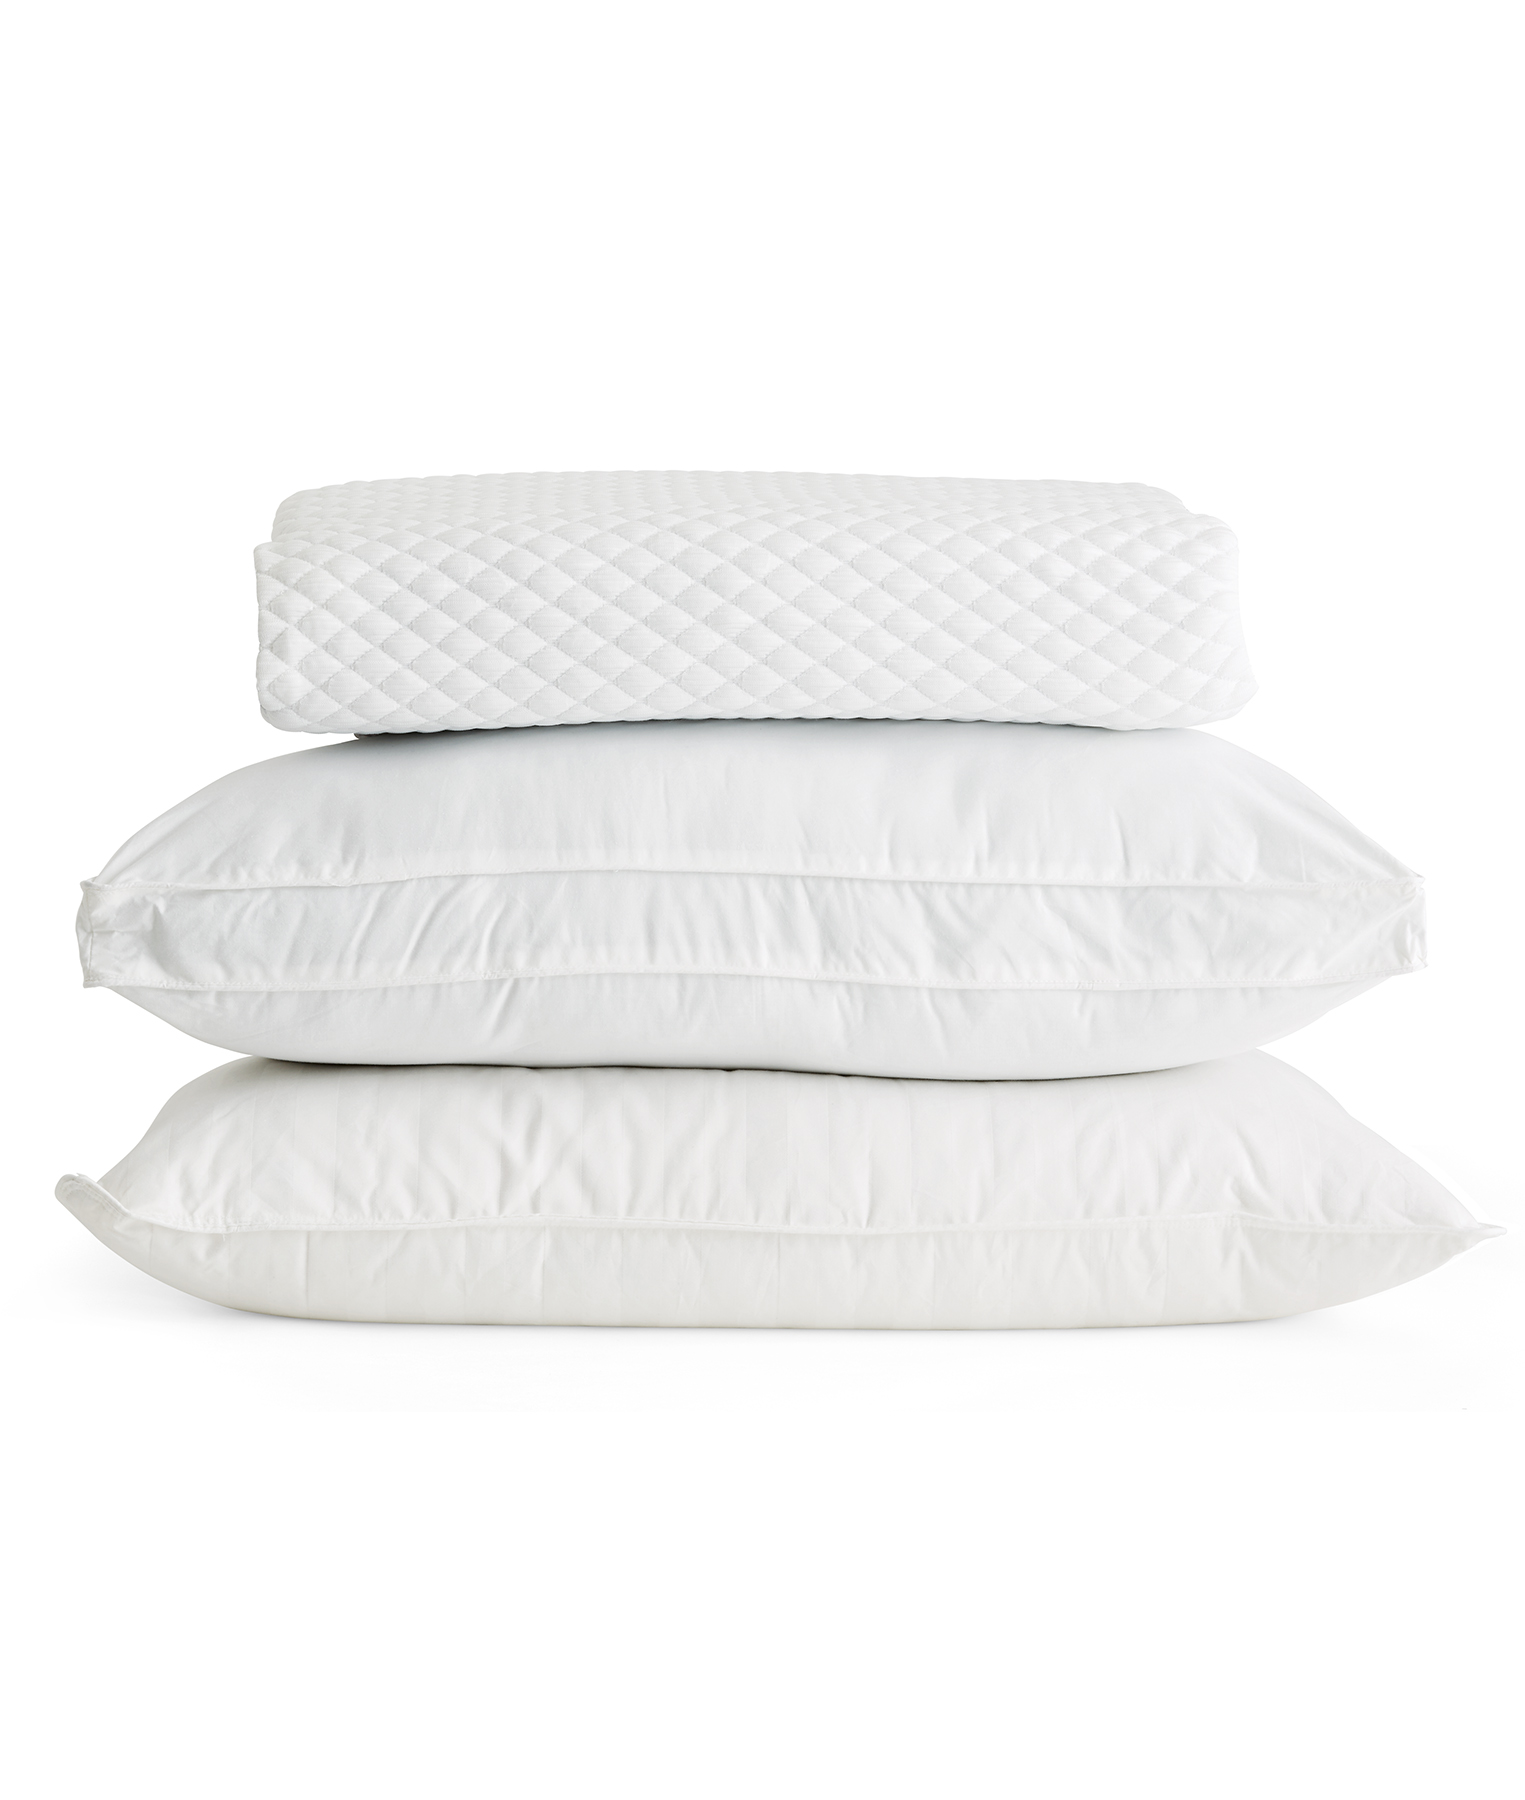 Stack with back, side, and stomach sleeper pillows